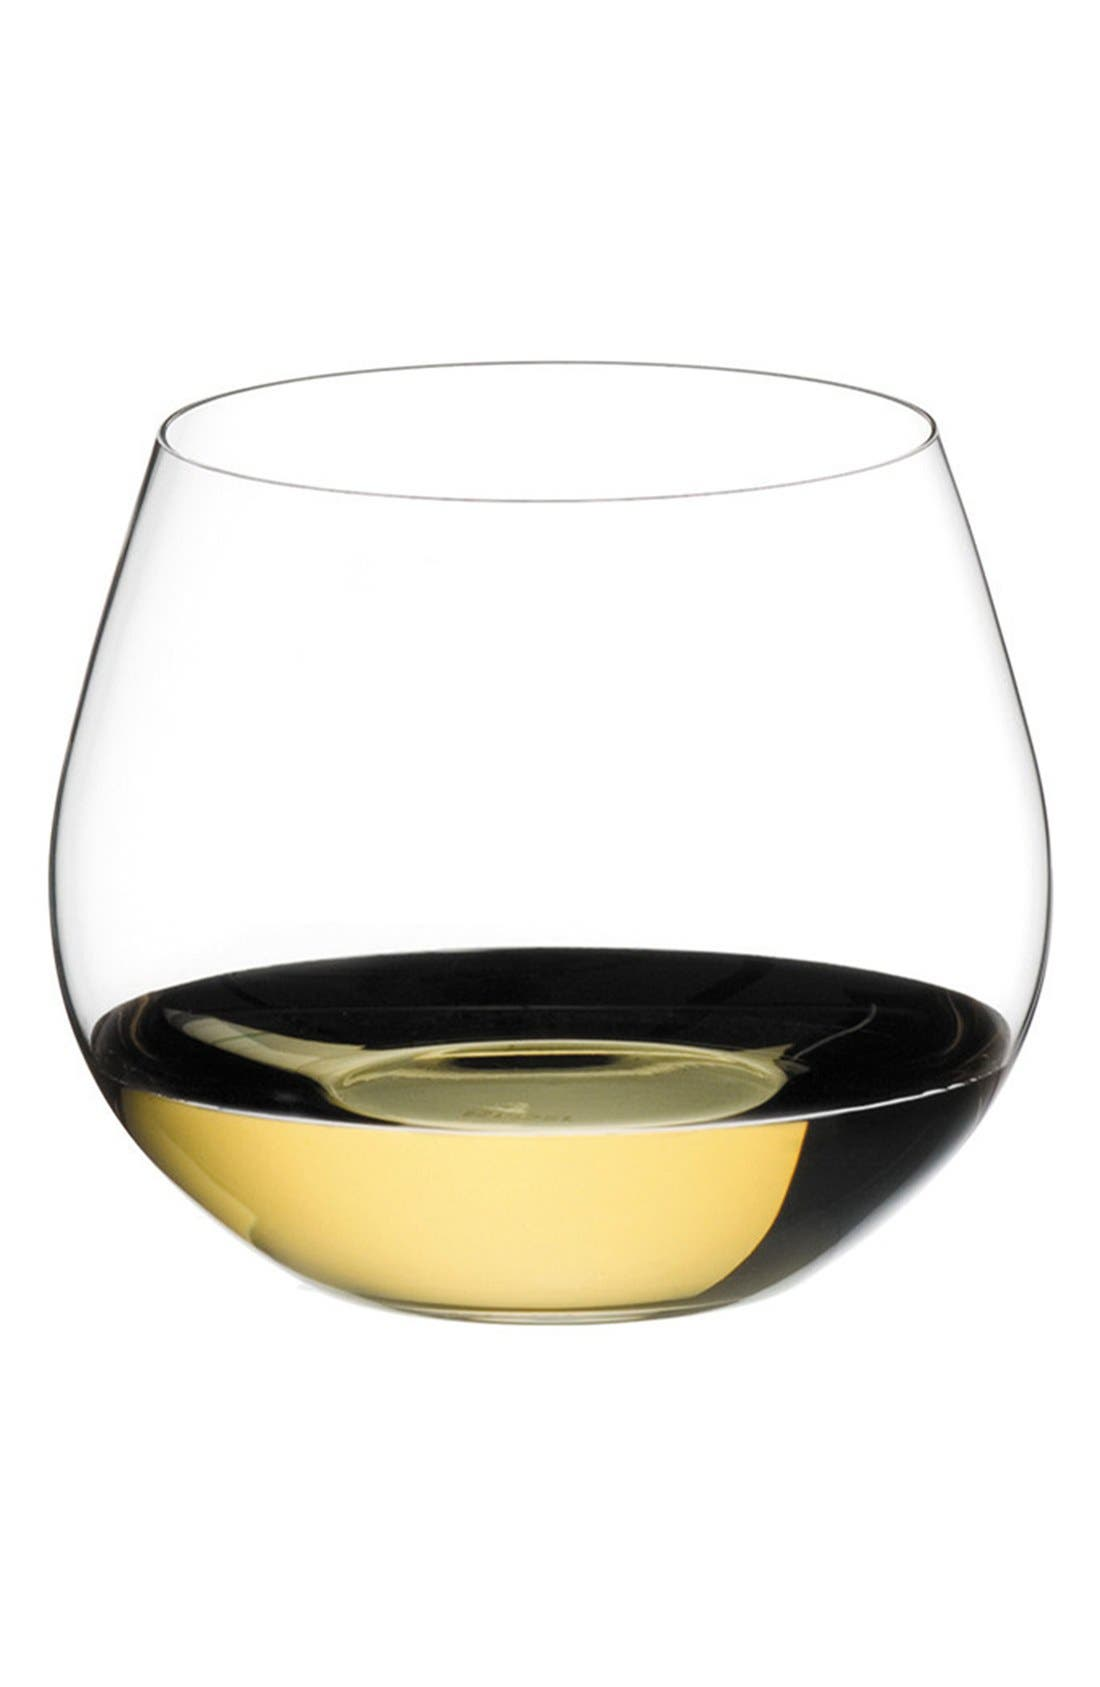 Main Image - Riedel O Set of 2 Stemless Oaked Chardonnay Glasses